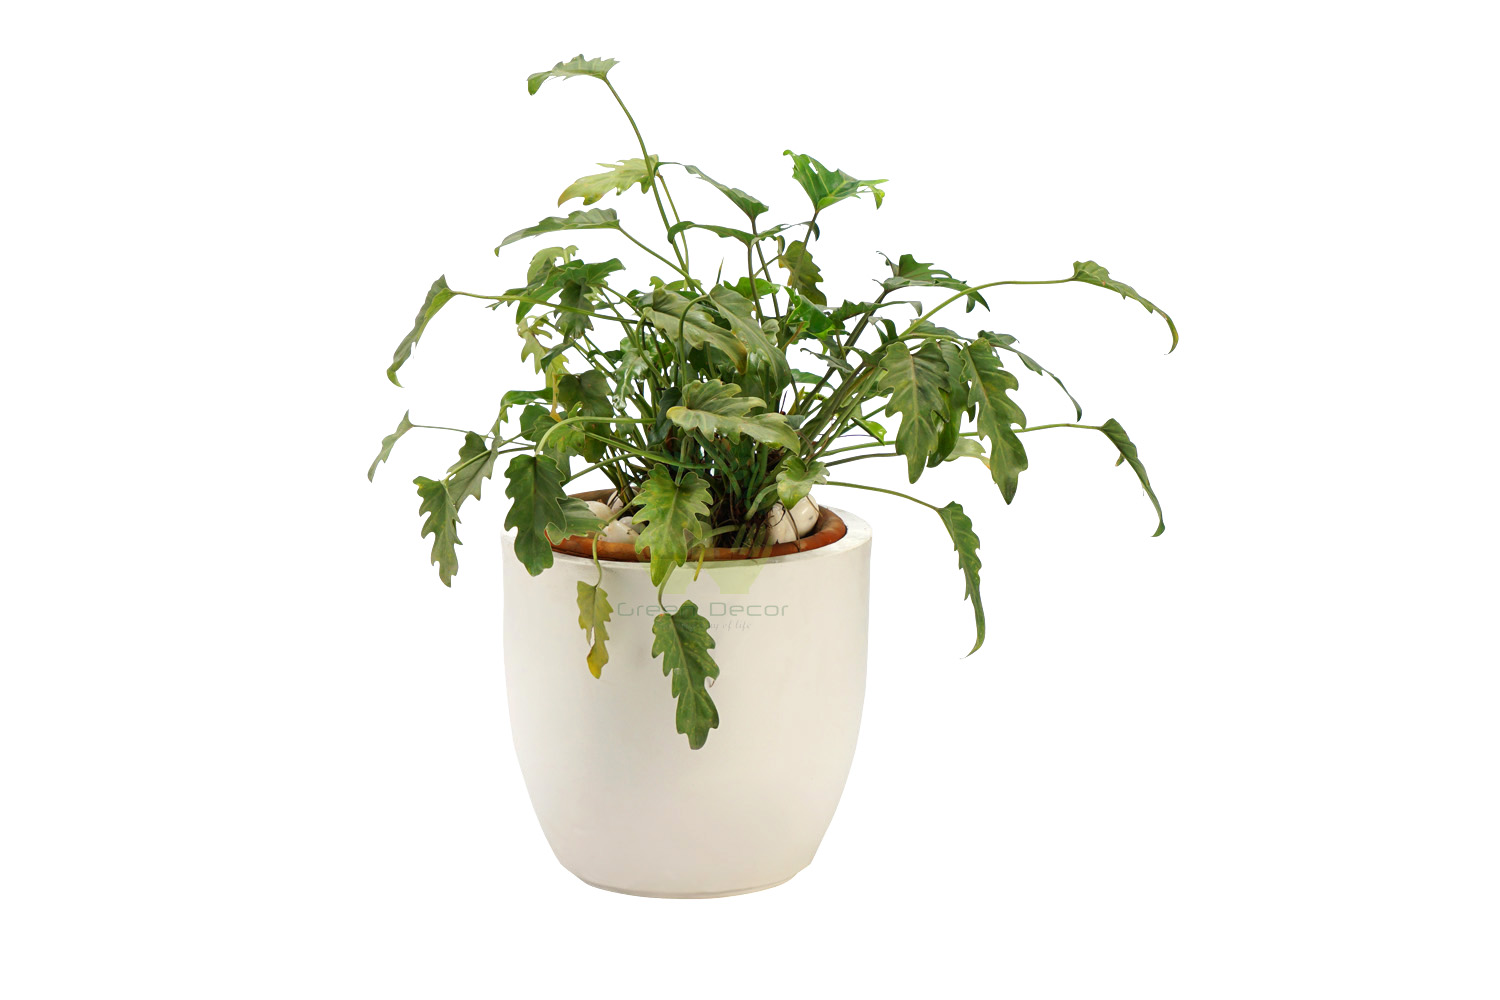 Buy Philodendron Xanadu Plant Front View, White Pots and Seeds in Delhi NCR by the best online nursery shop Greendecor.